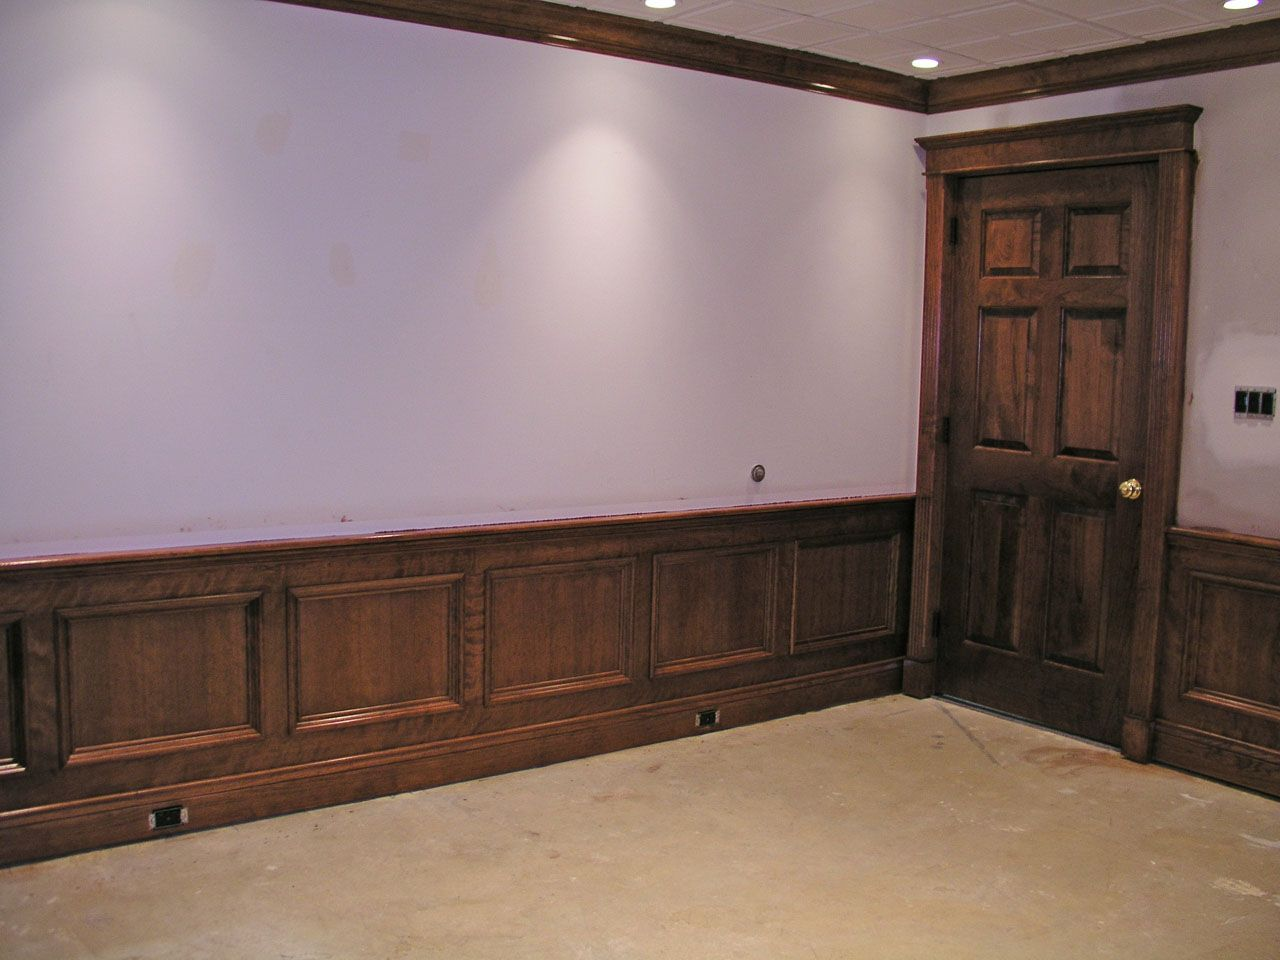 Bedroom Paneling Walls With Stained Wood Wainscoting Interior Classy